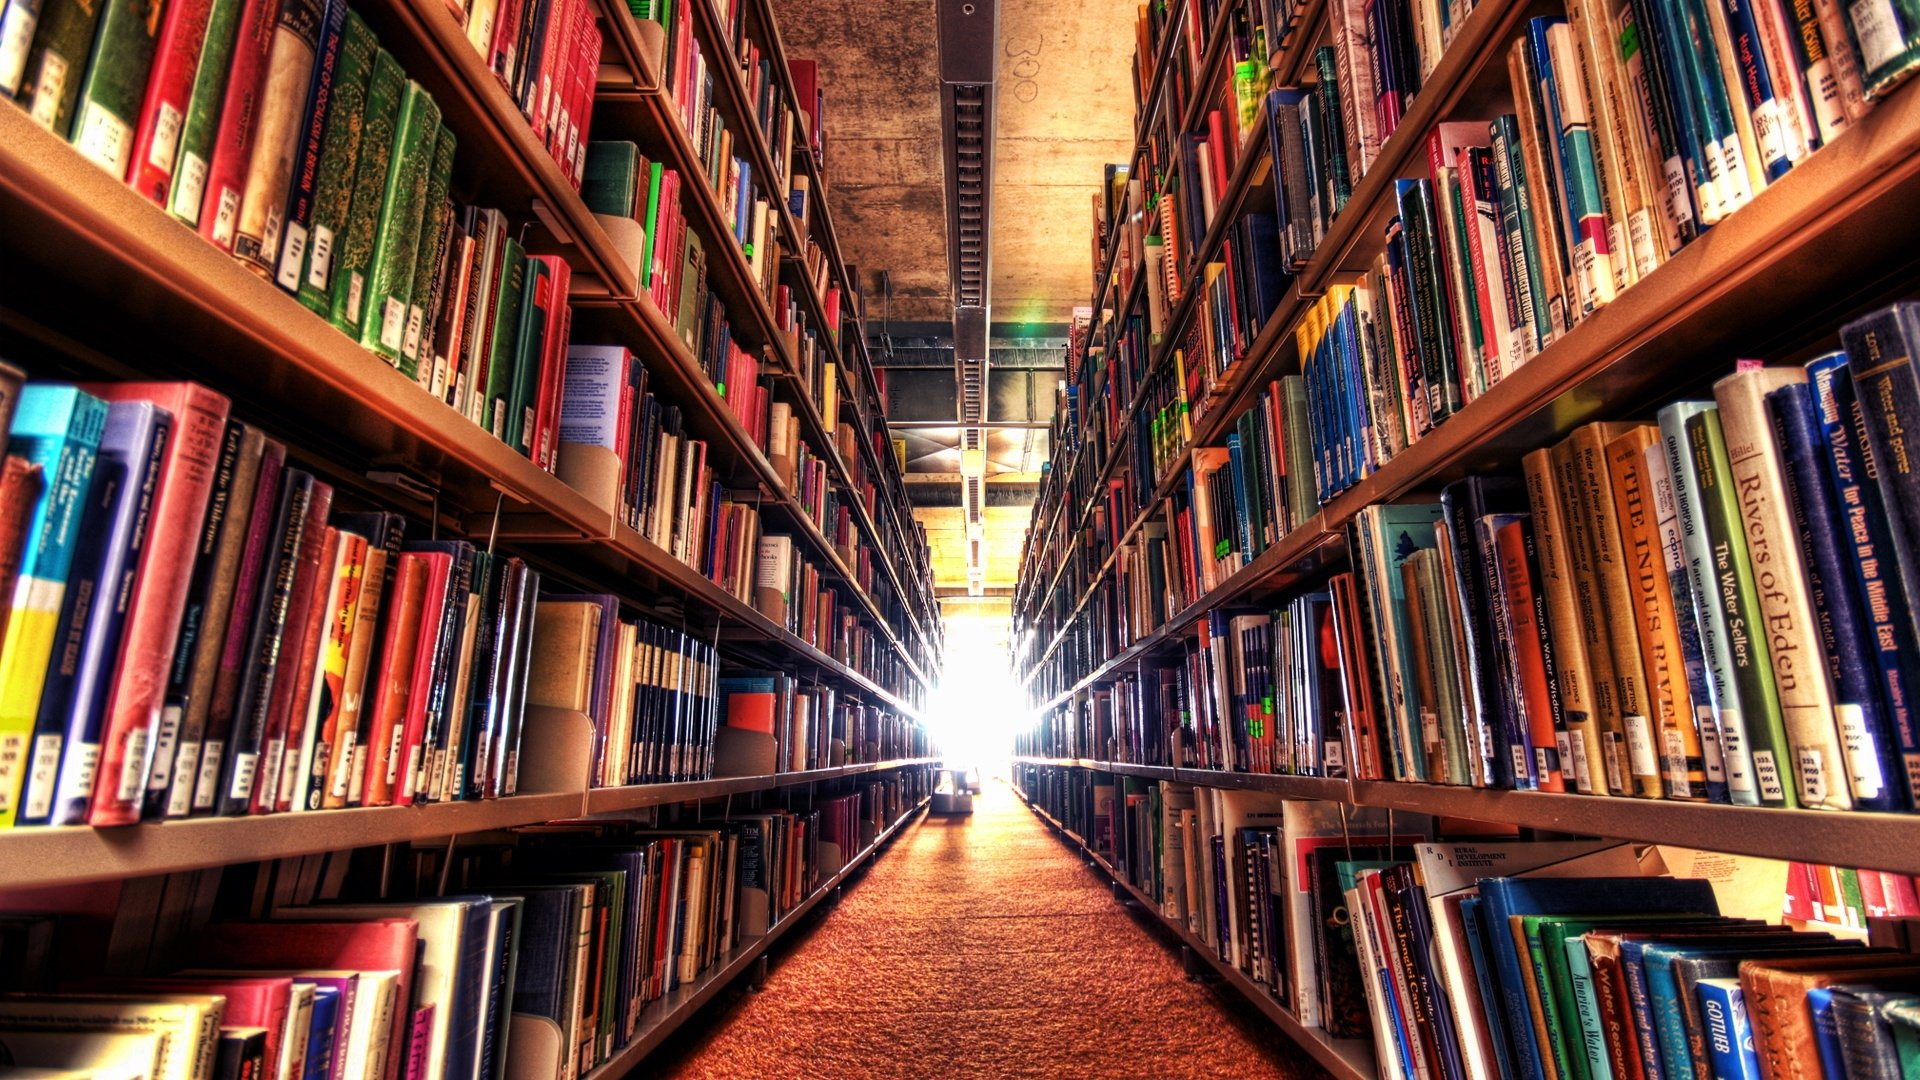 Library Background Image Hd - 1920x1080 ...